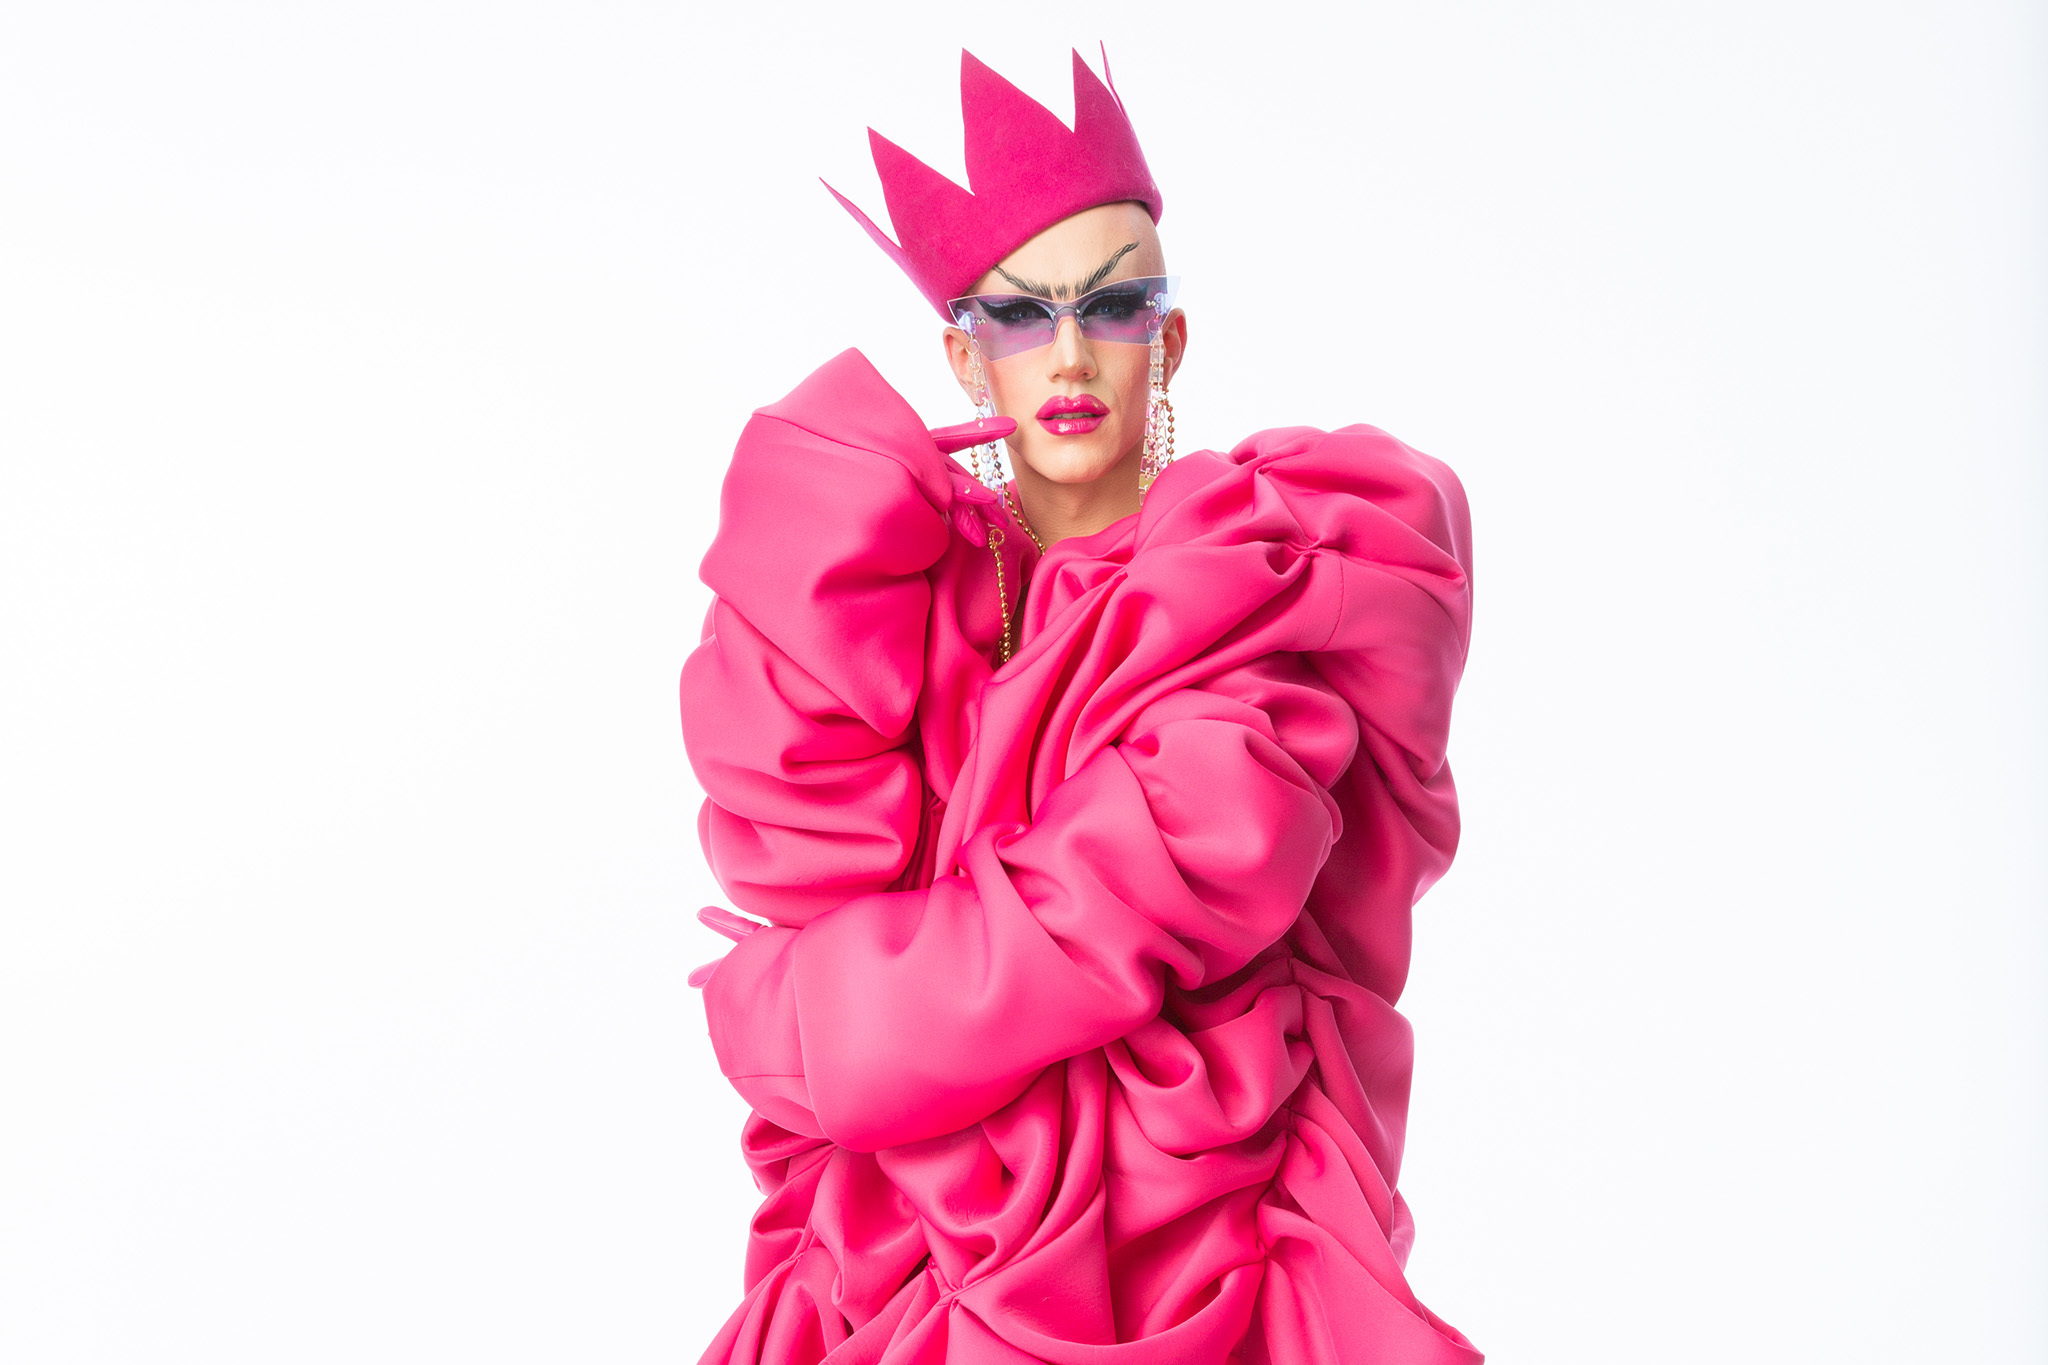 Sasha Velour talks touring the world as winner of RuPaul's Drag Race